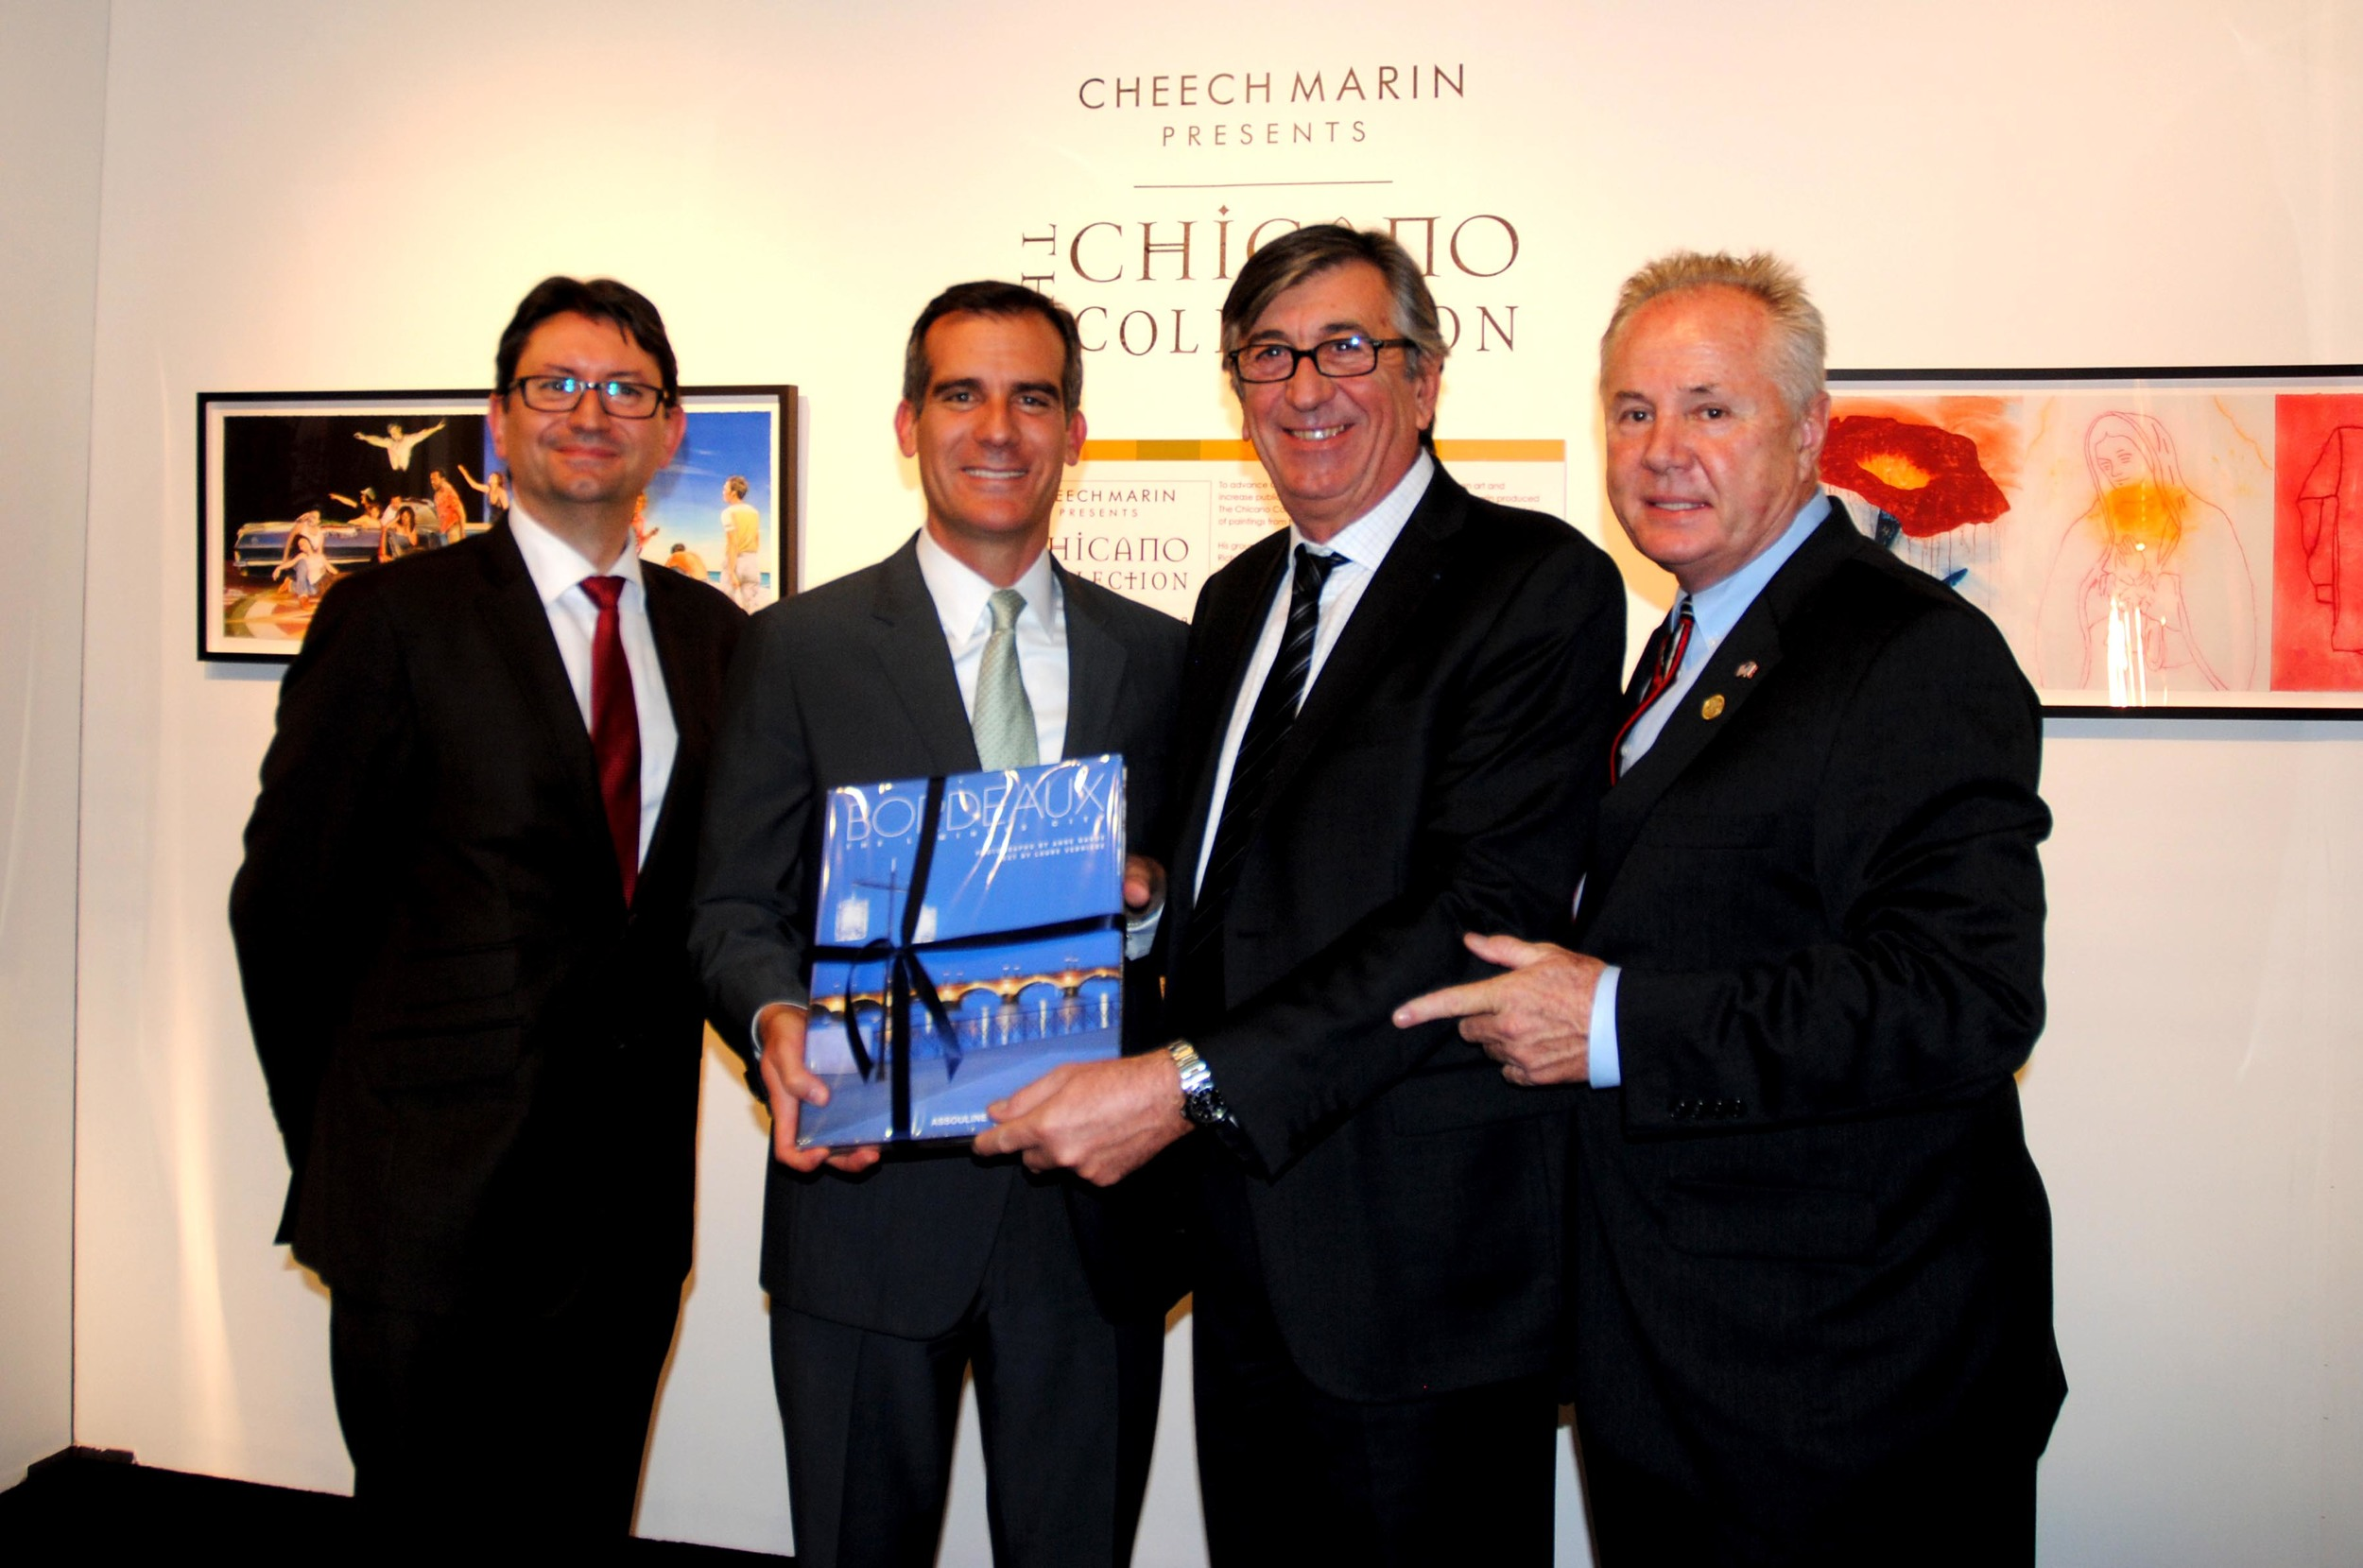 Axel Cruau, Consul General of France, Eric Garcetti, Mayor of the City of Los Angeles, Stephen Delaux, Deputy Mayor of Bordeaux, Councilmember Tom LaBonge, Council District 4